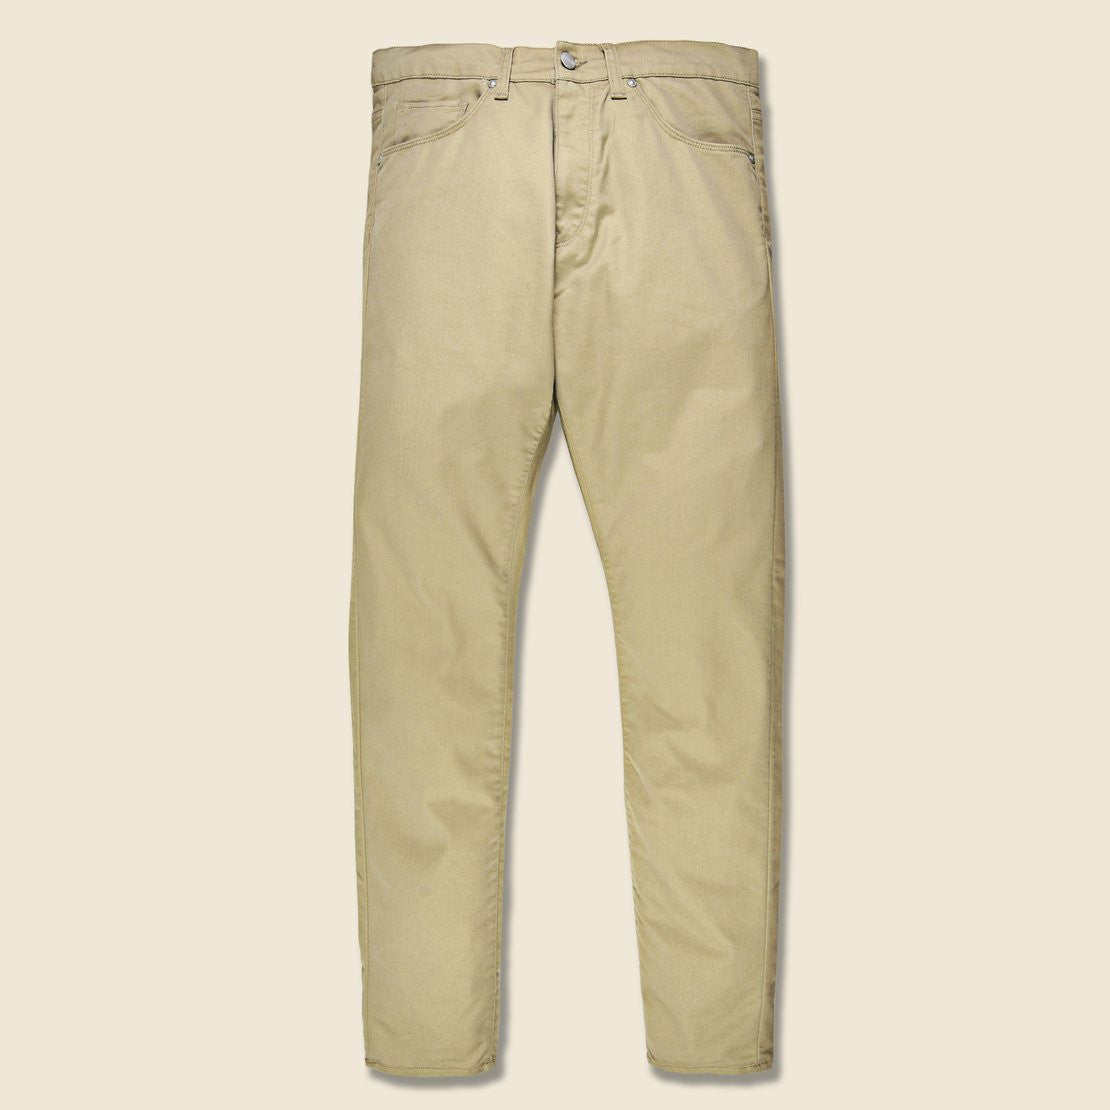 Carhartt WIP Vicious Pant - Leather